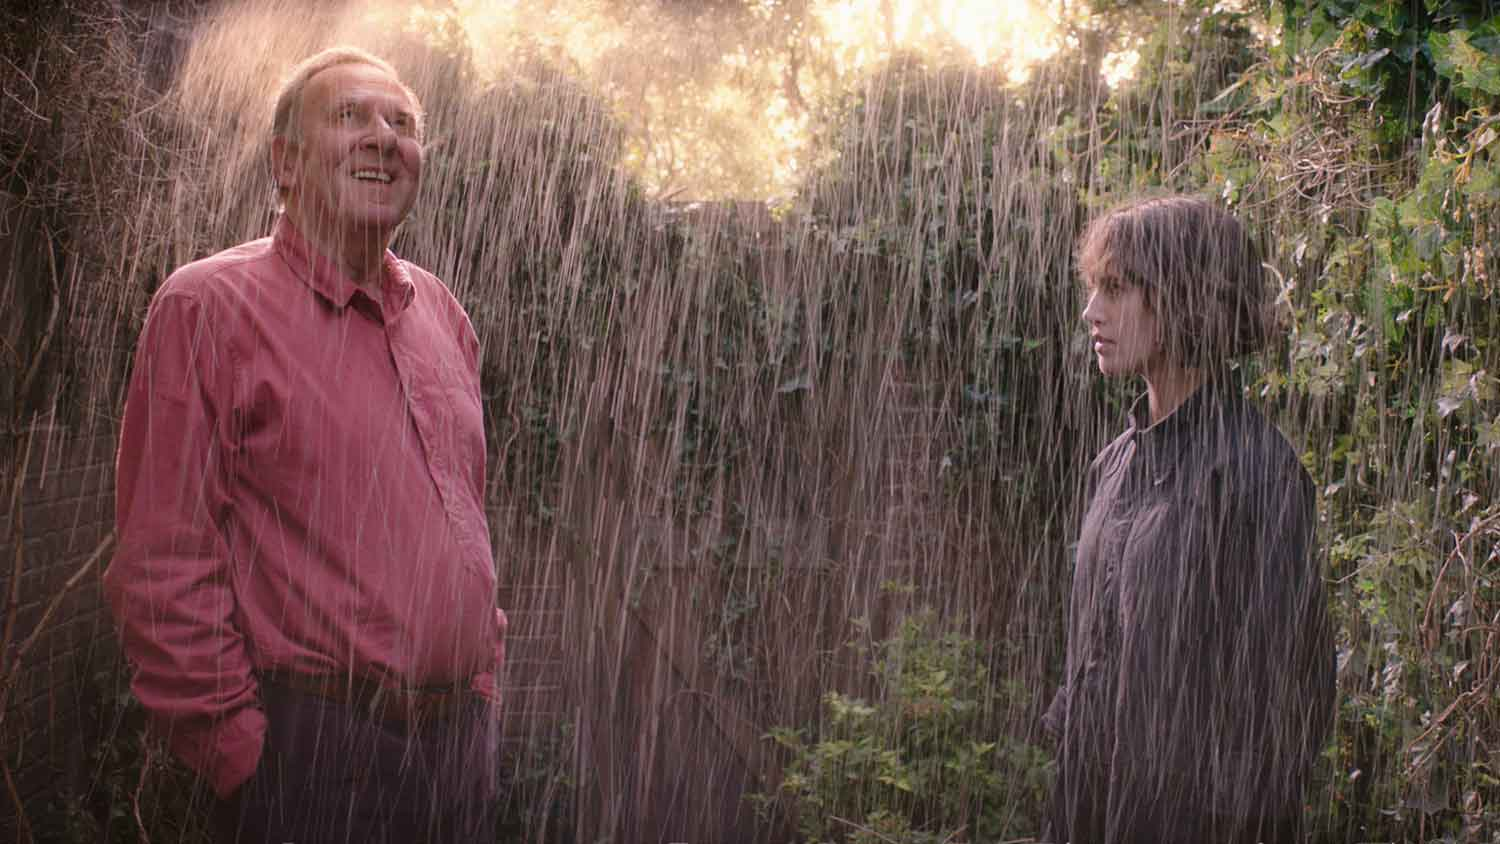 This Beautiful Fantastic Review – Ordered Fantasy - OC Movie Reviews - Movie Reviews, Movie News, Documentary Reviews, Short Films, Short Film Reviews, Trailers, Movie Trailers, Interviews, film reviews, film news, hollywood, indie films, documentaries